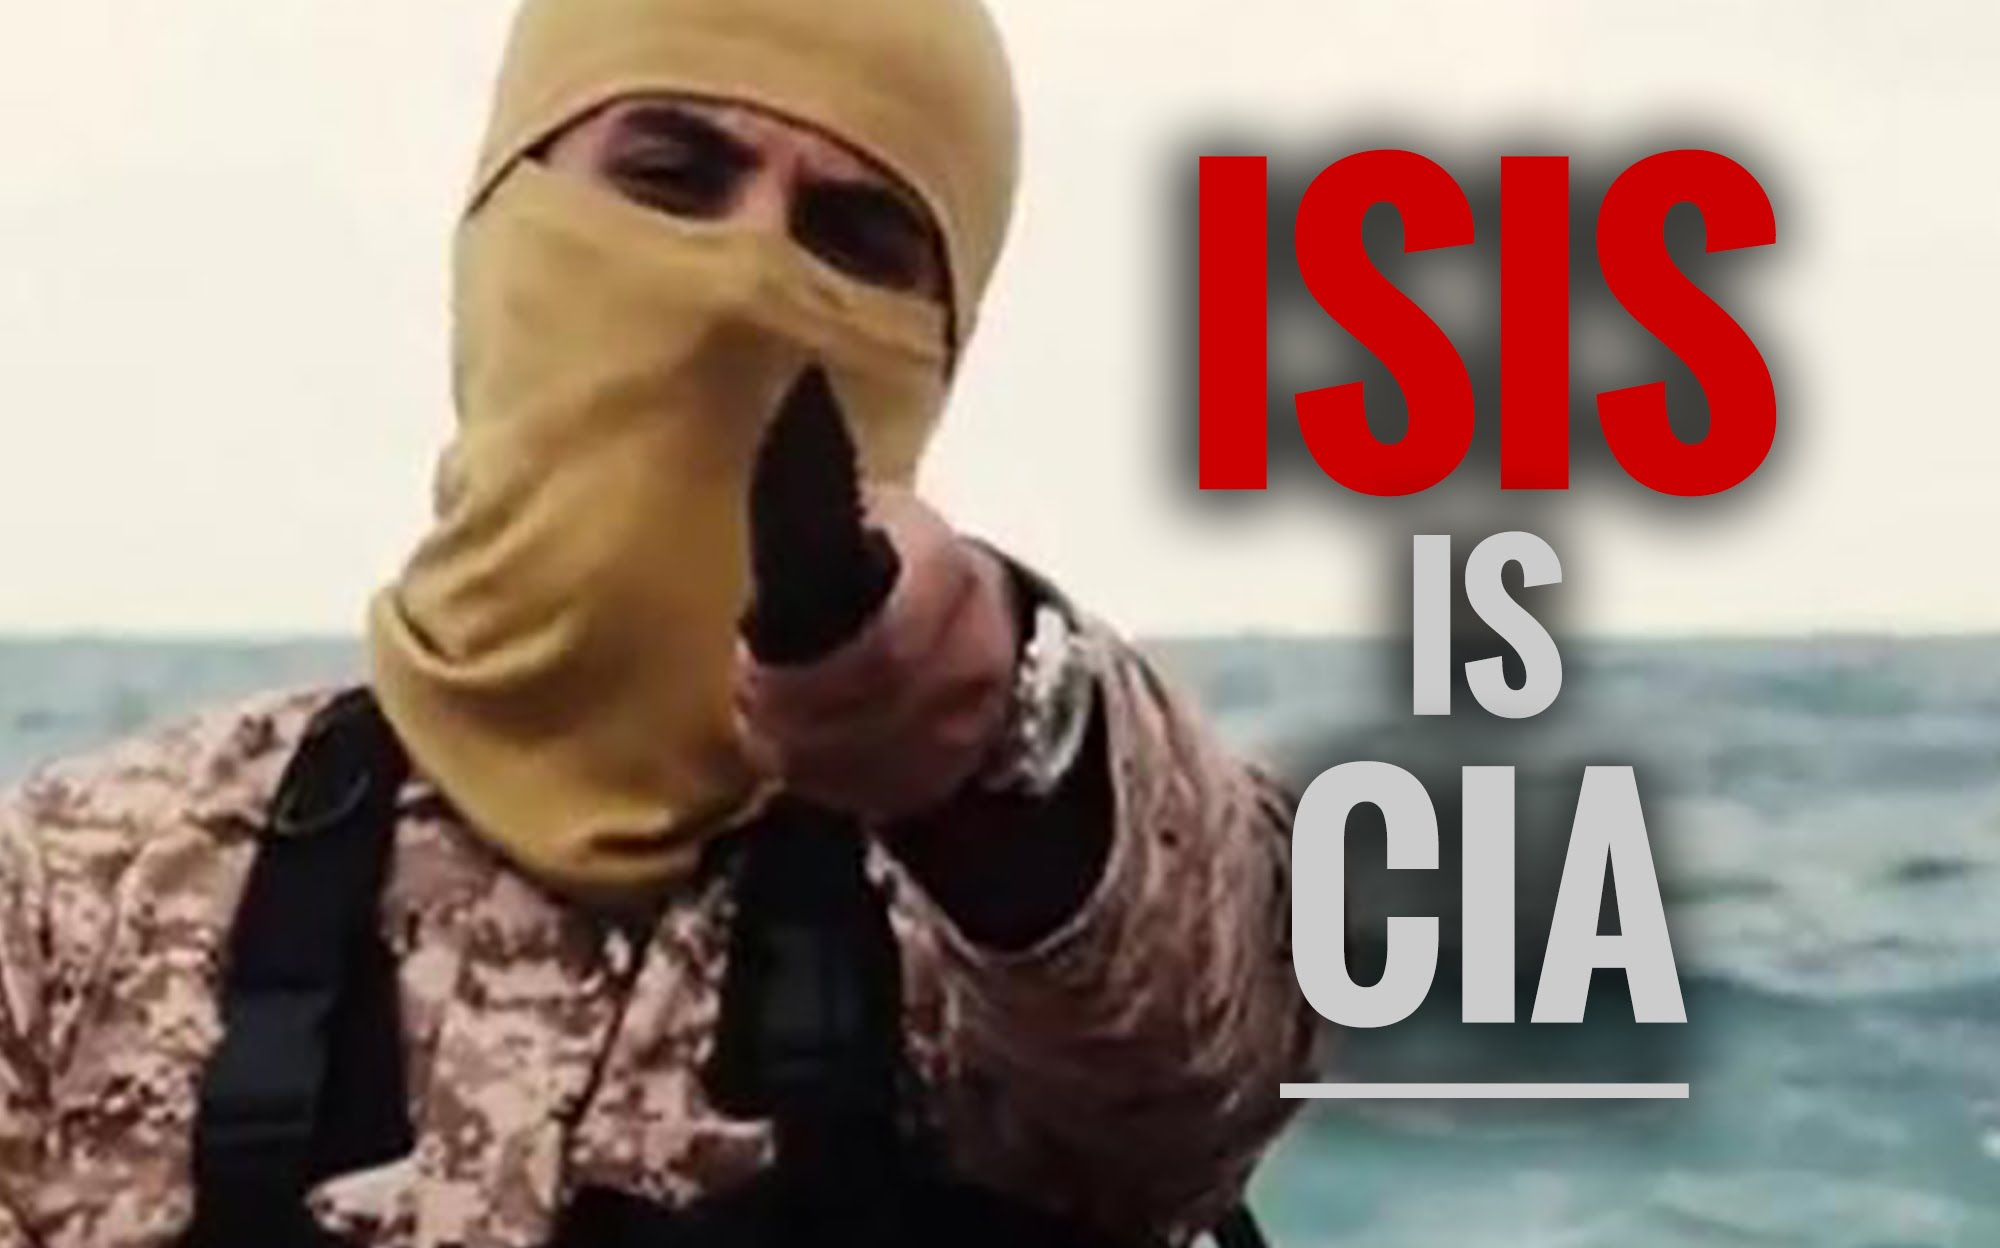 ISIS was created by the CIA and Mossad